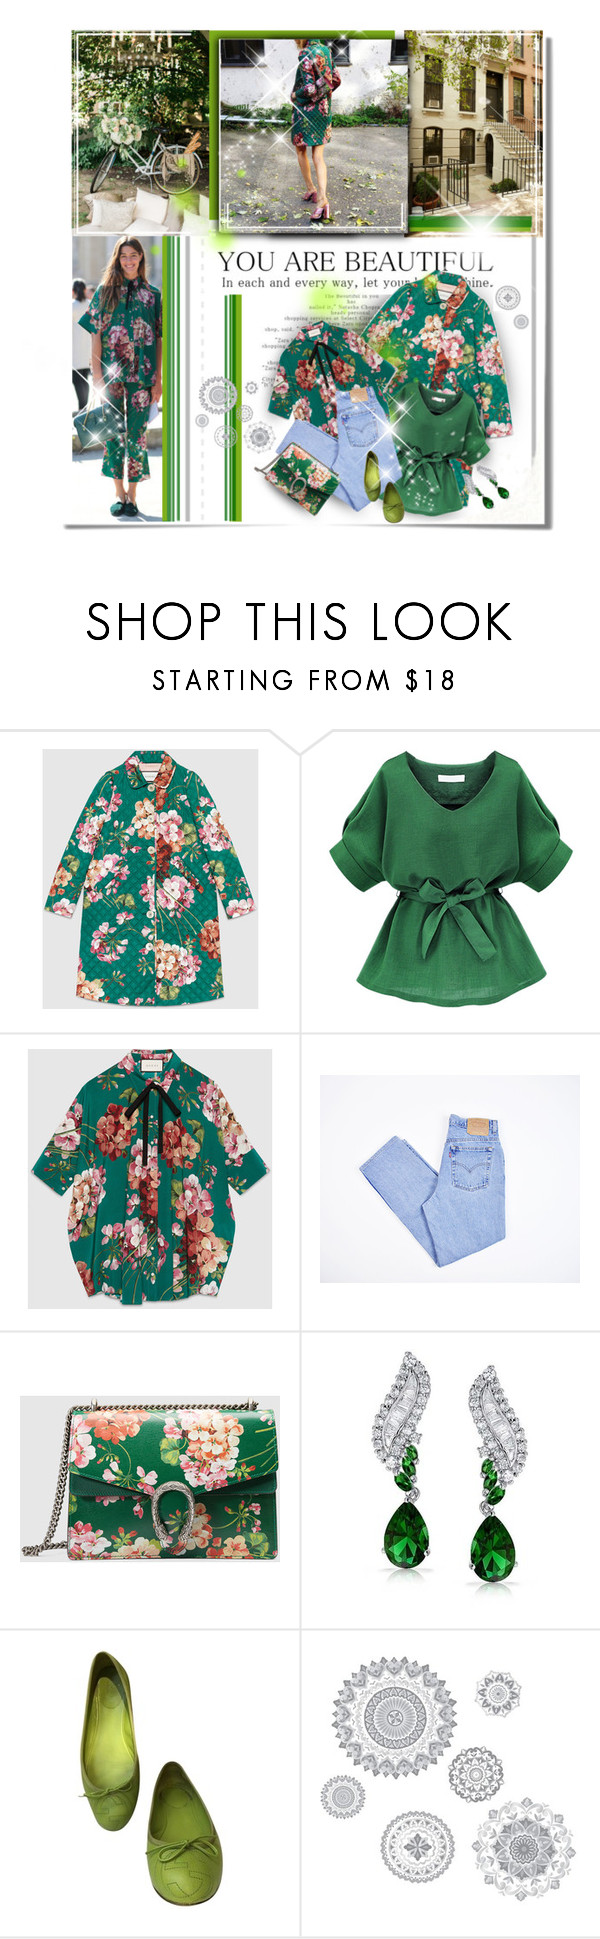 """""""Flovers For Gucci"""" by janiaame ❤ liked on Polyvore featuring Gucci, Levi's, Bling Jewelry, WallPops, gucci, milan, Packandgo, spring2016 and janiamania"""